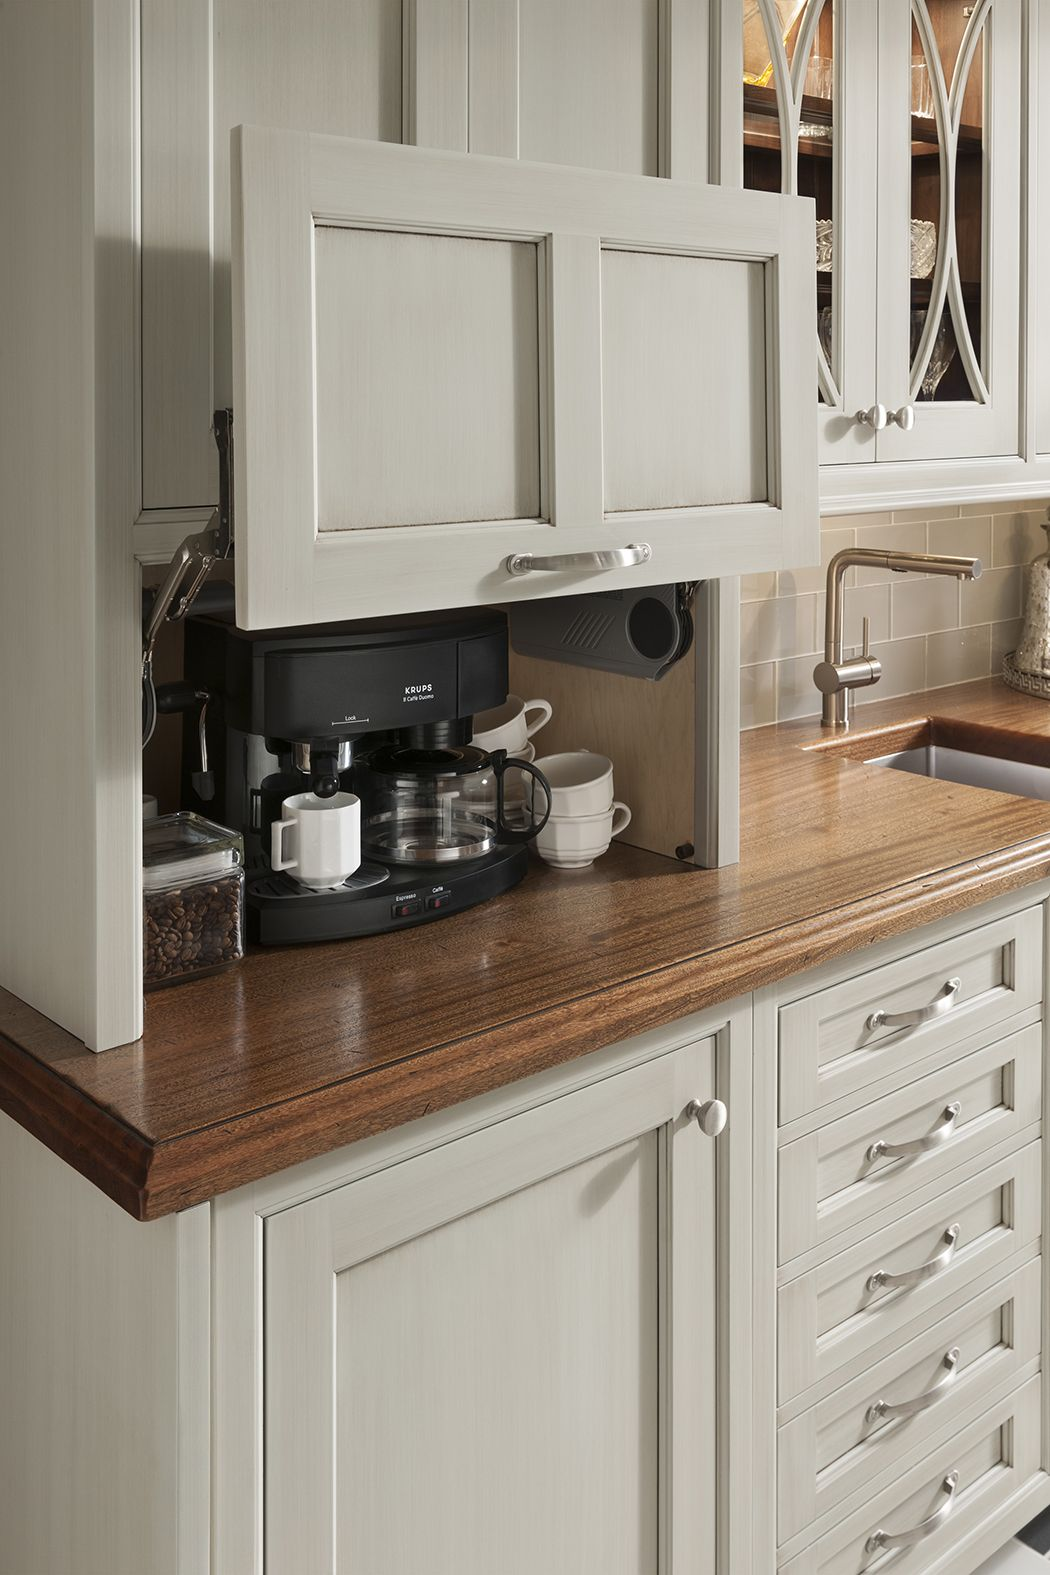 Trending in 2016 built in wet bars coffee stations and for Where can i find kitchen cabinets